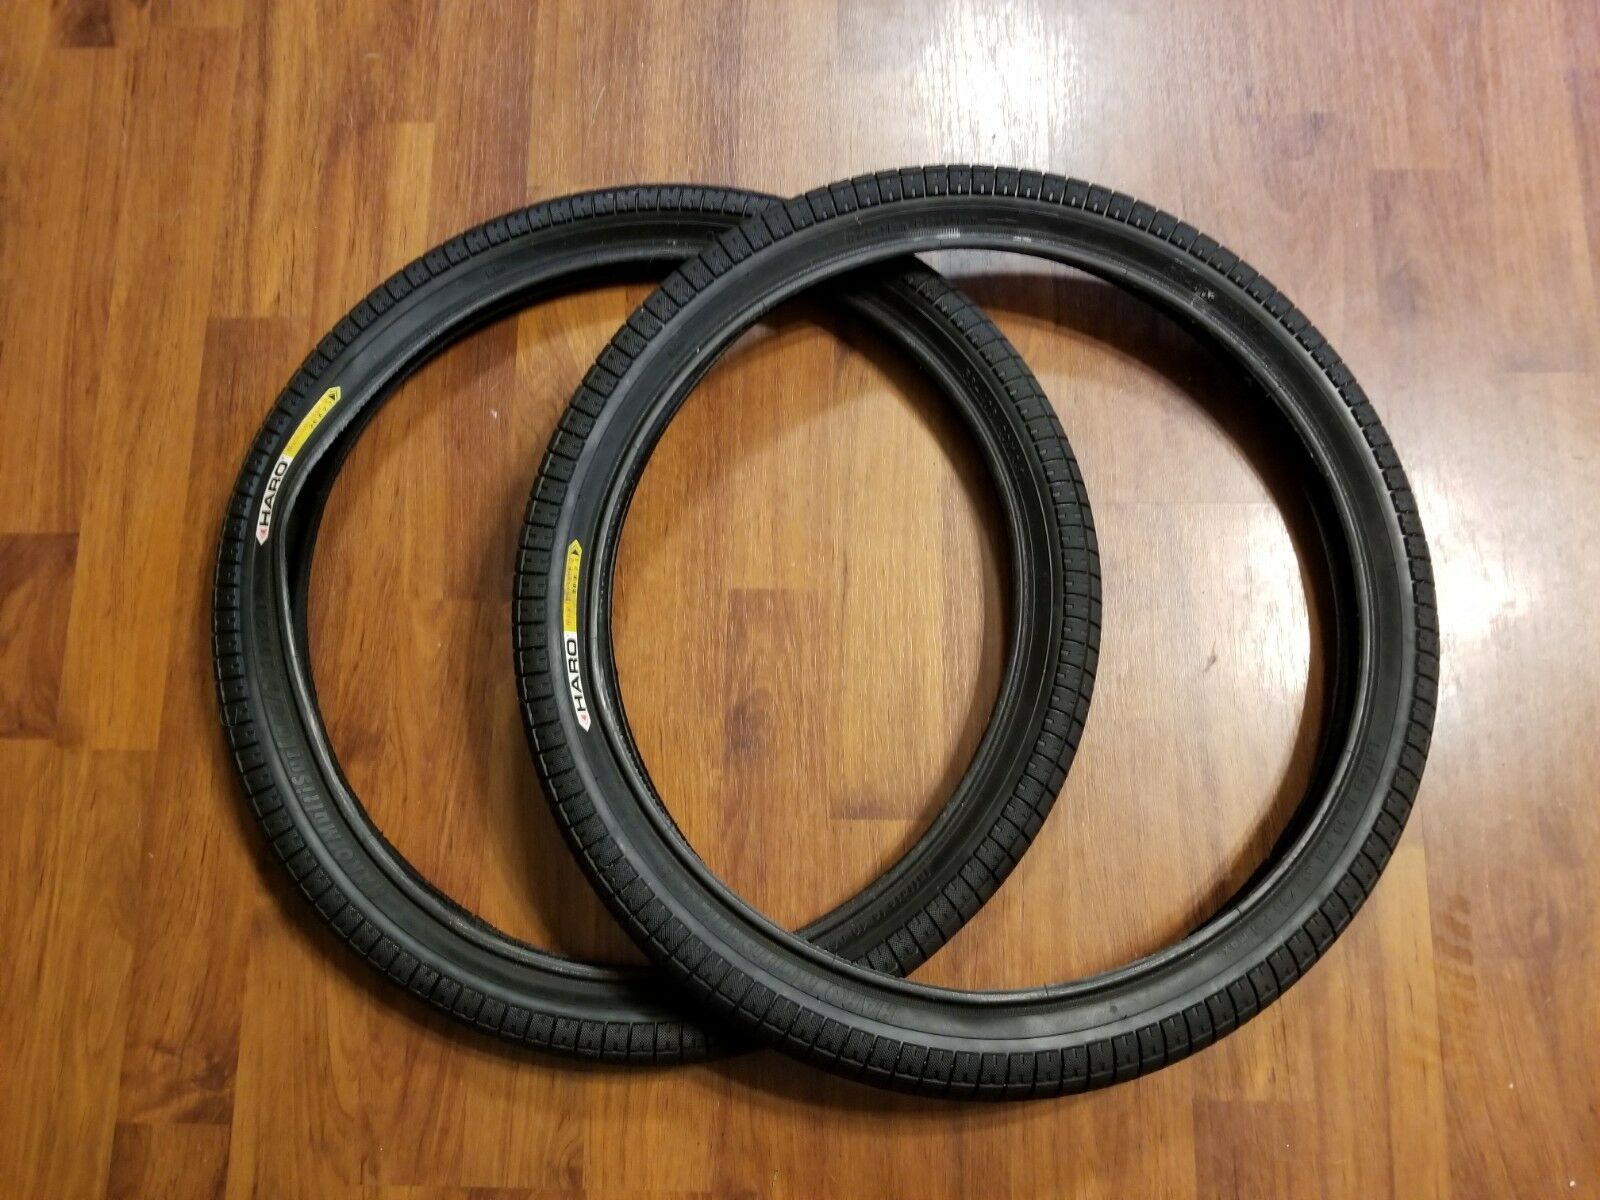 Haro Multisurface 3 BMX Bike Tires - 20 X 2.1  - Mid-School